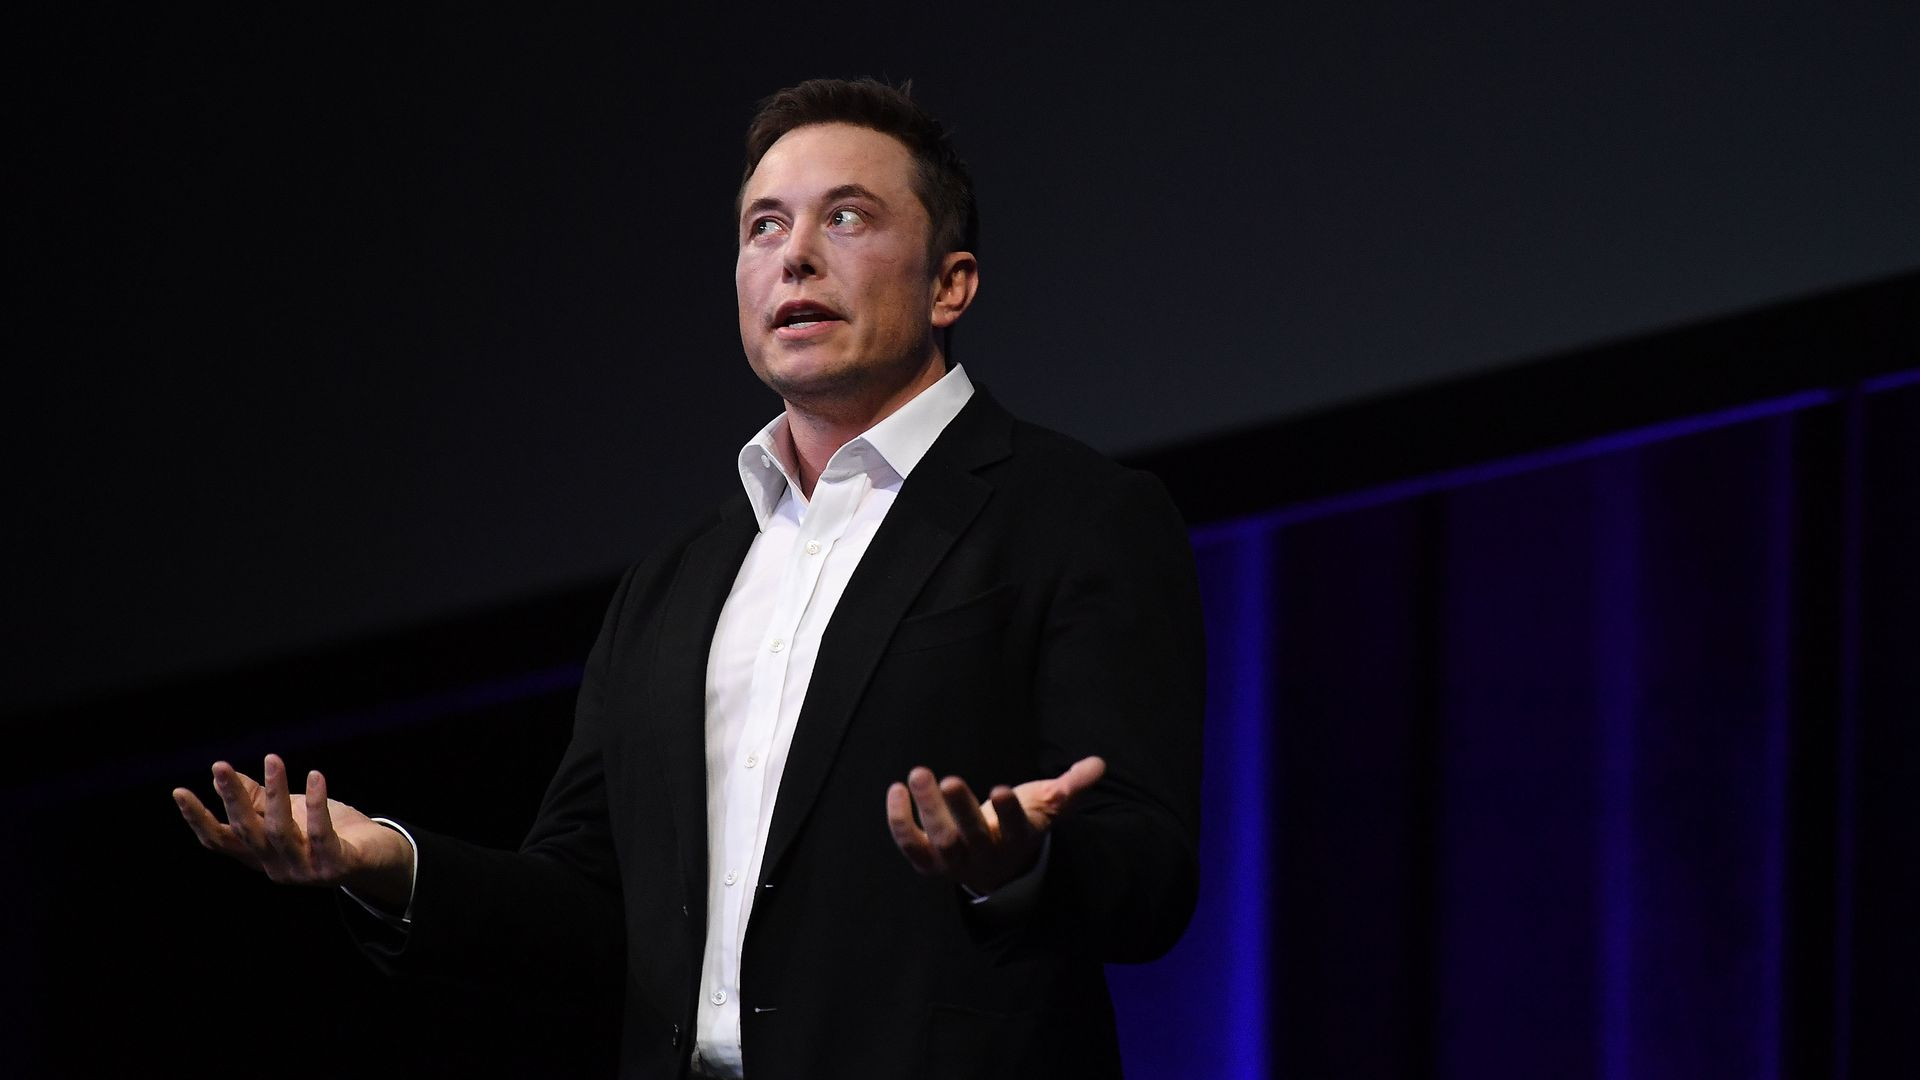 Elon Musk in a black suit, white shirt and no tie with both hands palms up talking